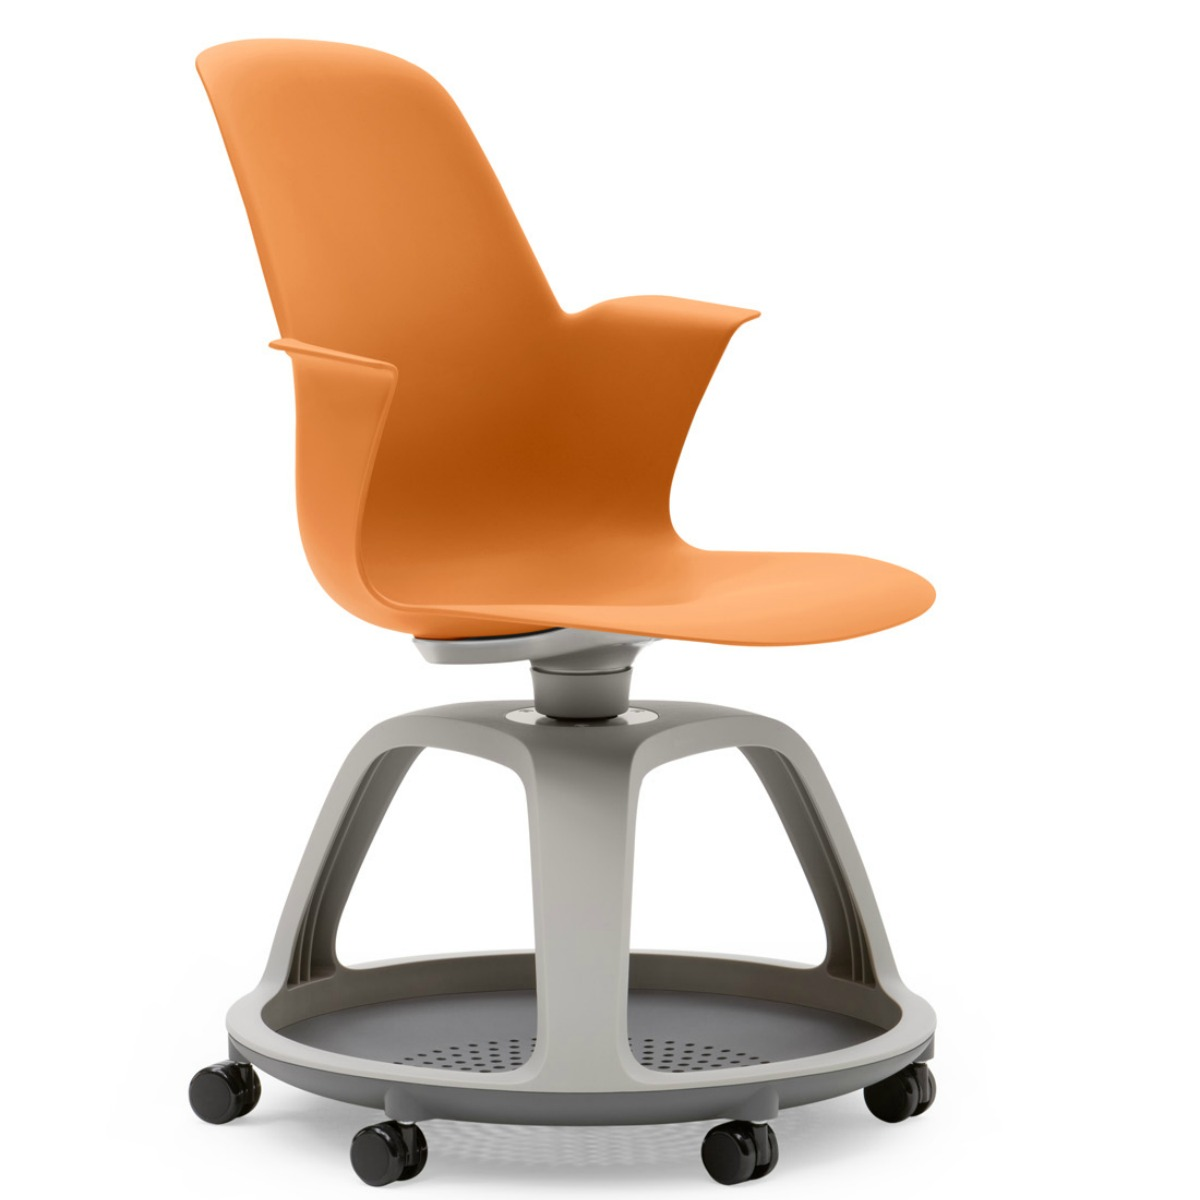 Node Chairs Steelcase Node Chair Shop Steelcase Node Chairs